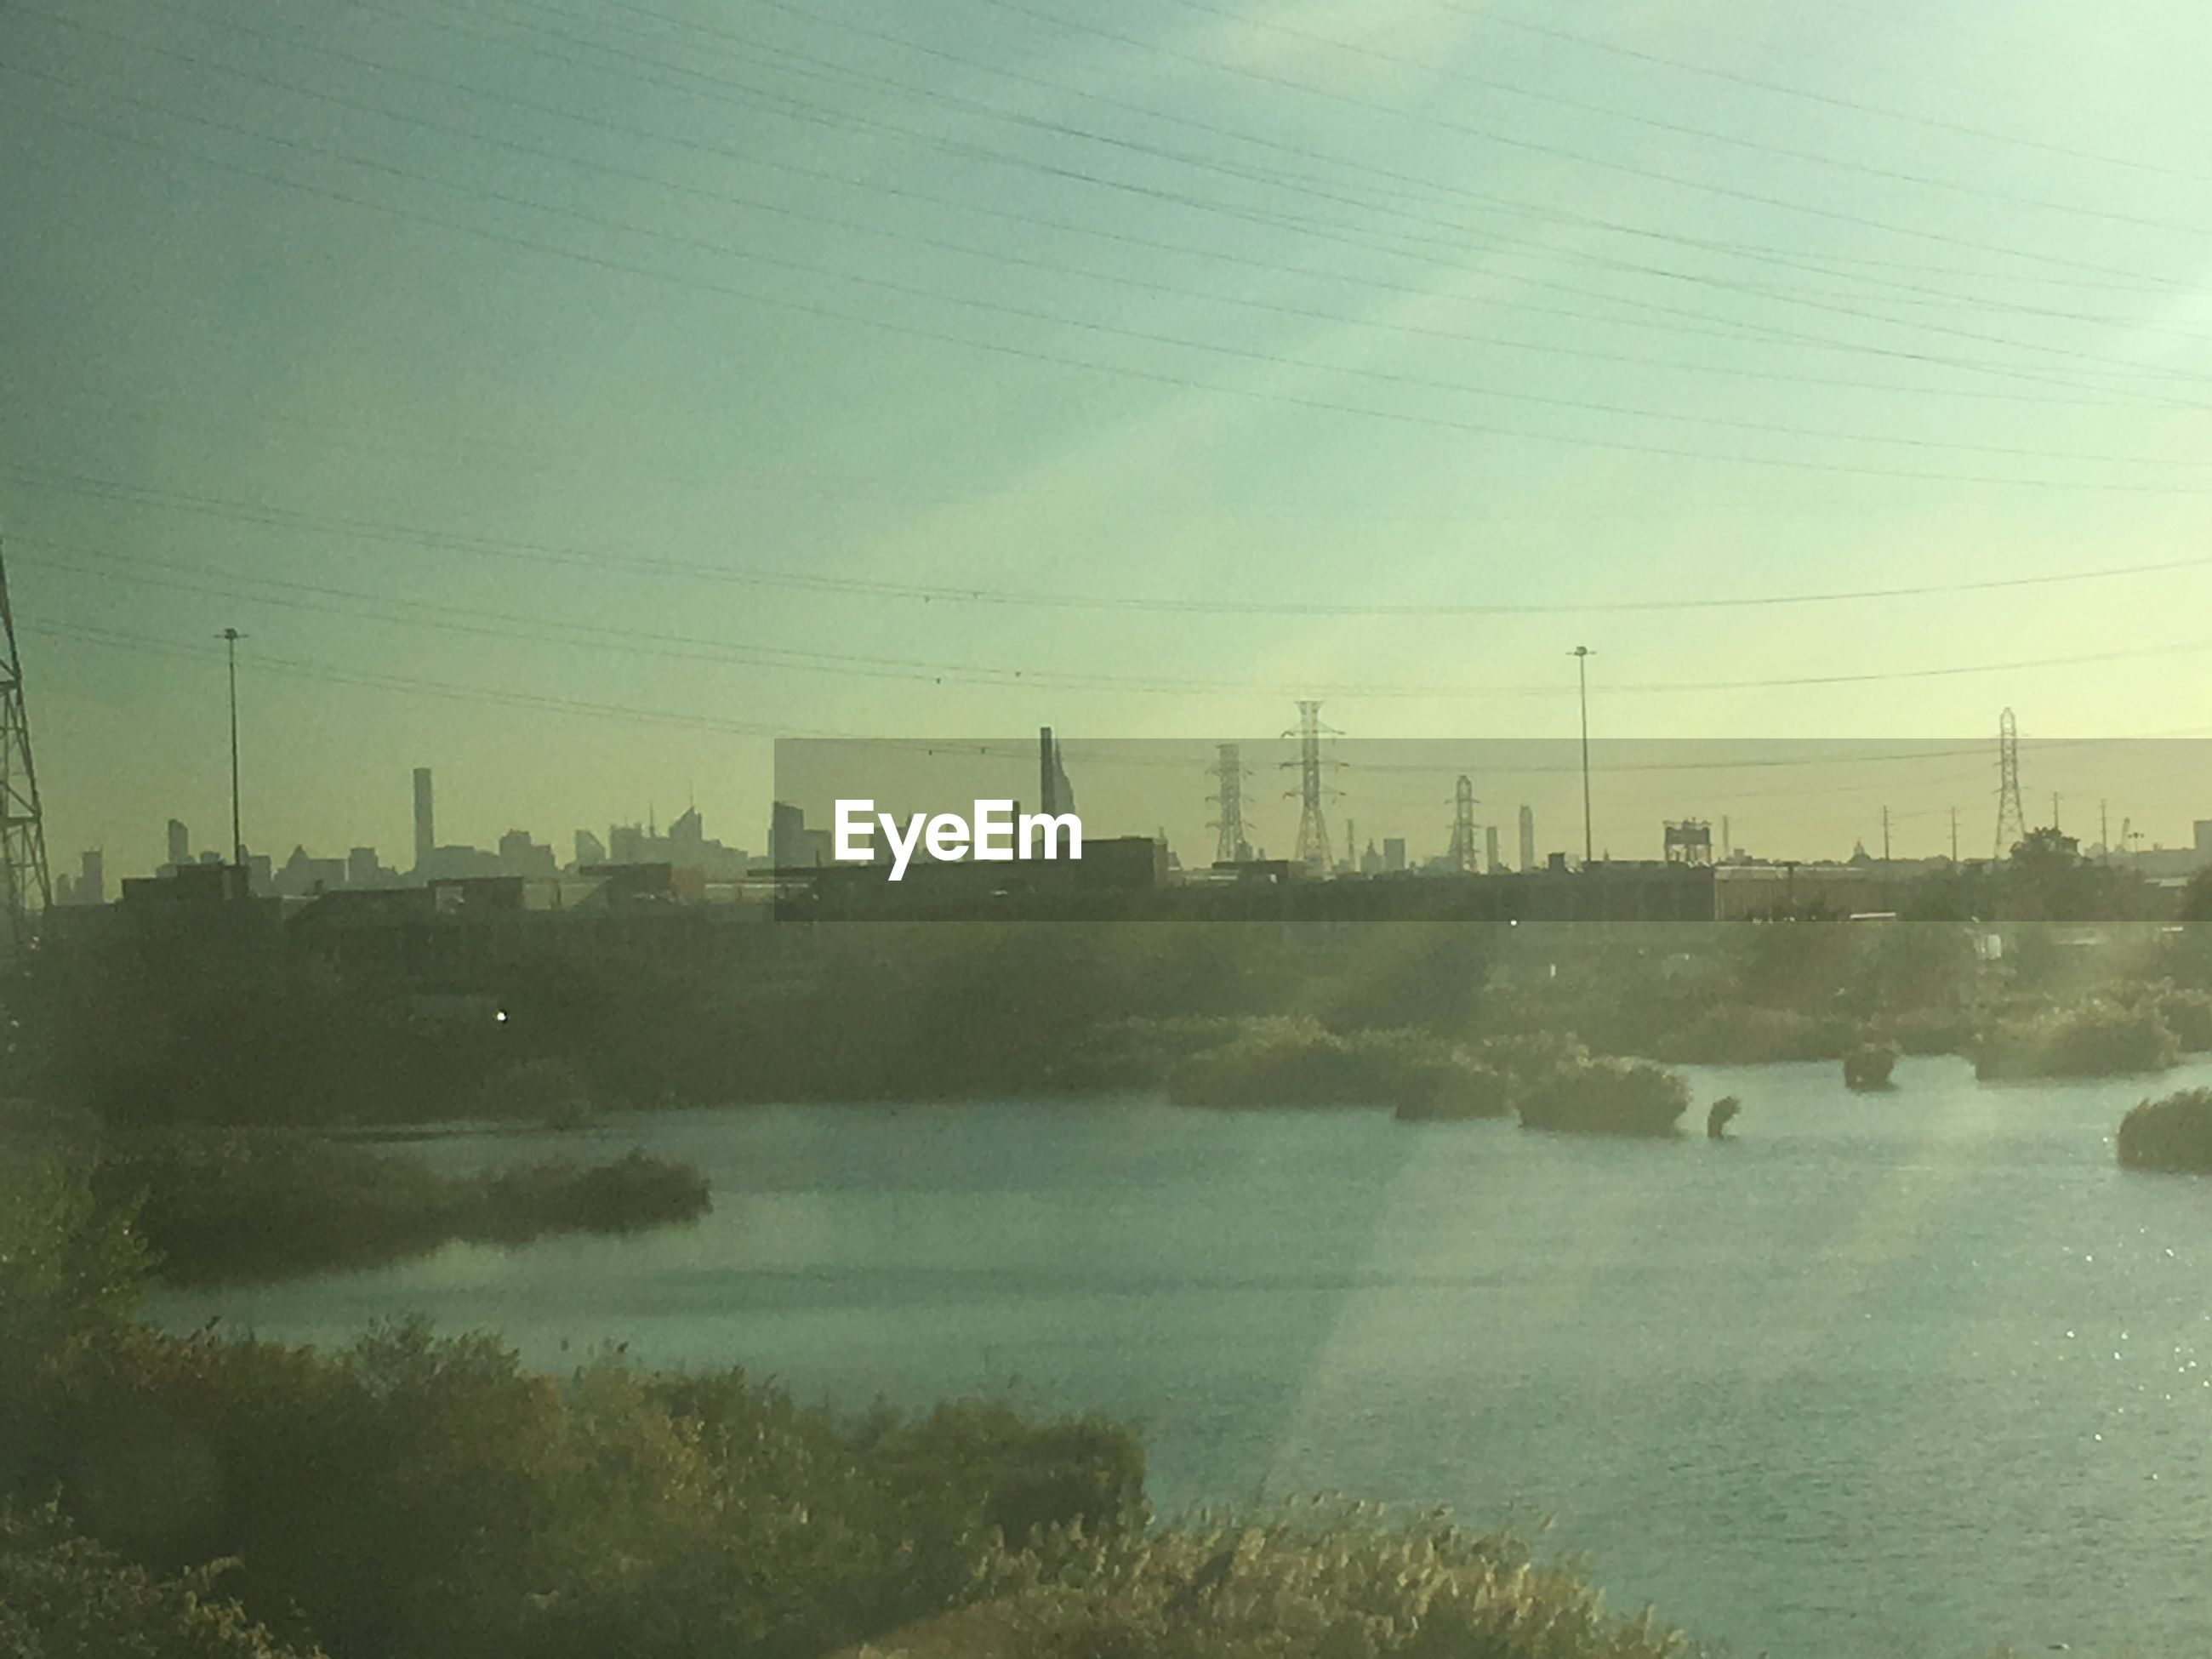 water, river, no people, nature, sky, outdoors, built structure, electricity pylon, day, riverbank, architecture, building exterior, smoke stack, landscape, industry, beauty in nature, tree, factory, city, power station, cityscape